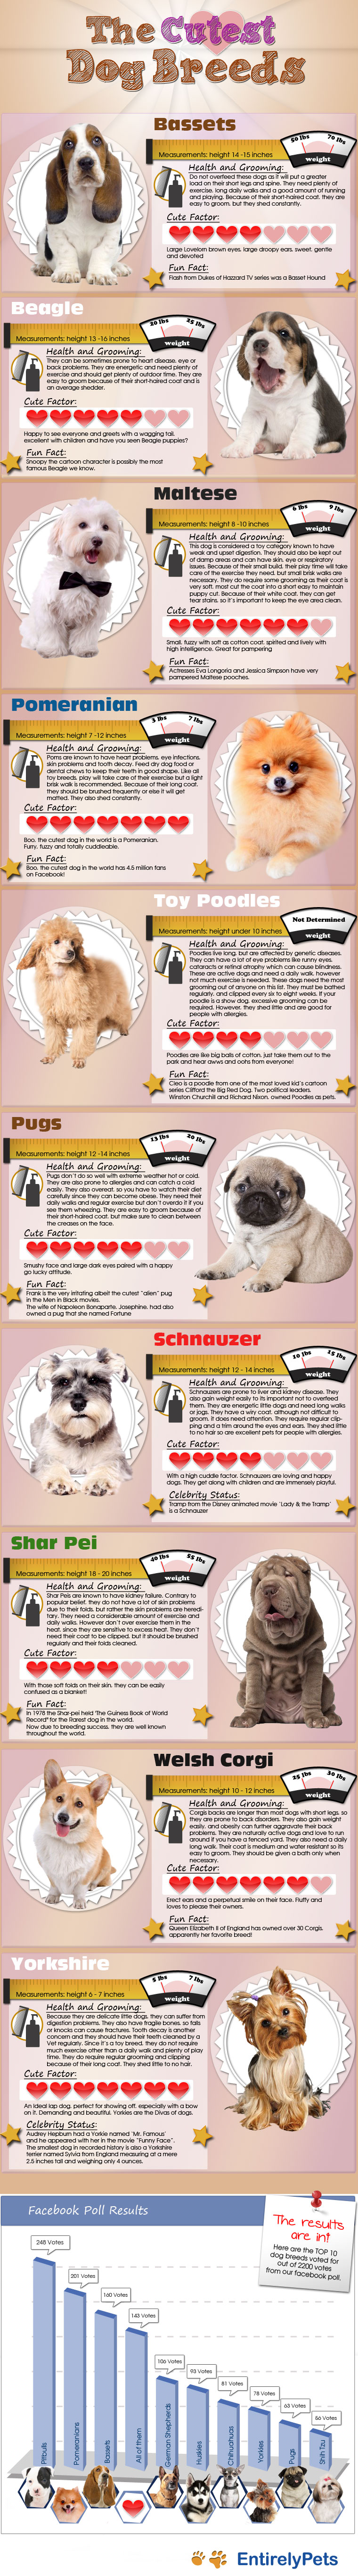 EntirelyPets rates the cutest dog breeds plus our facebook poll results